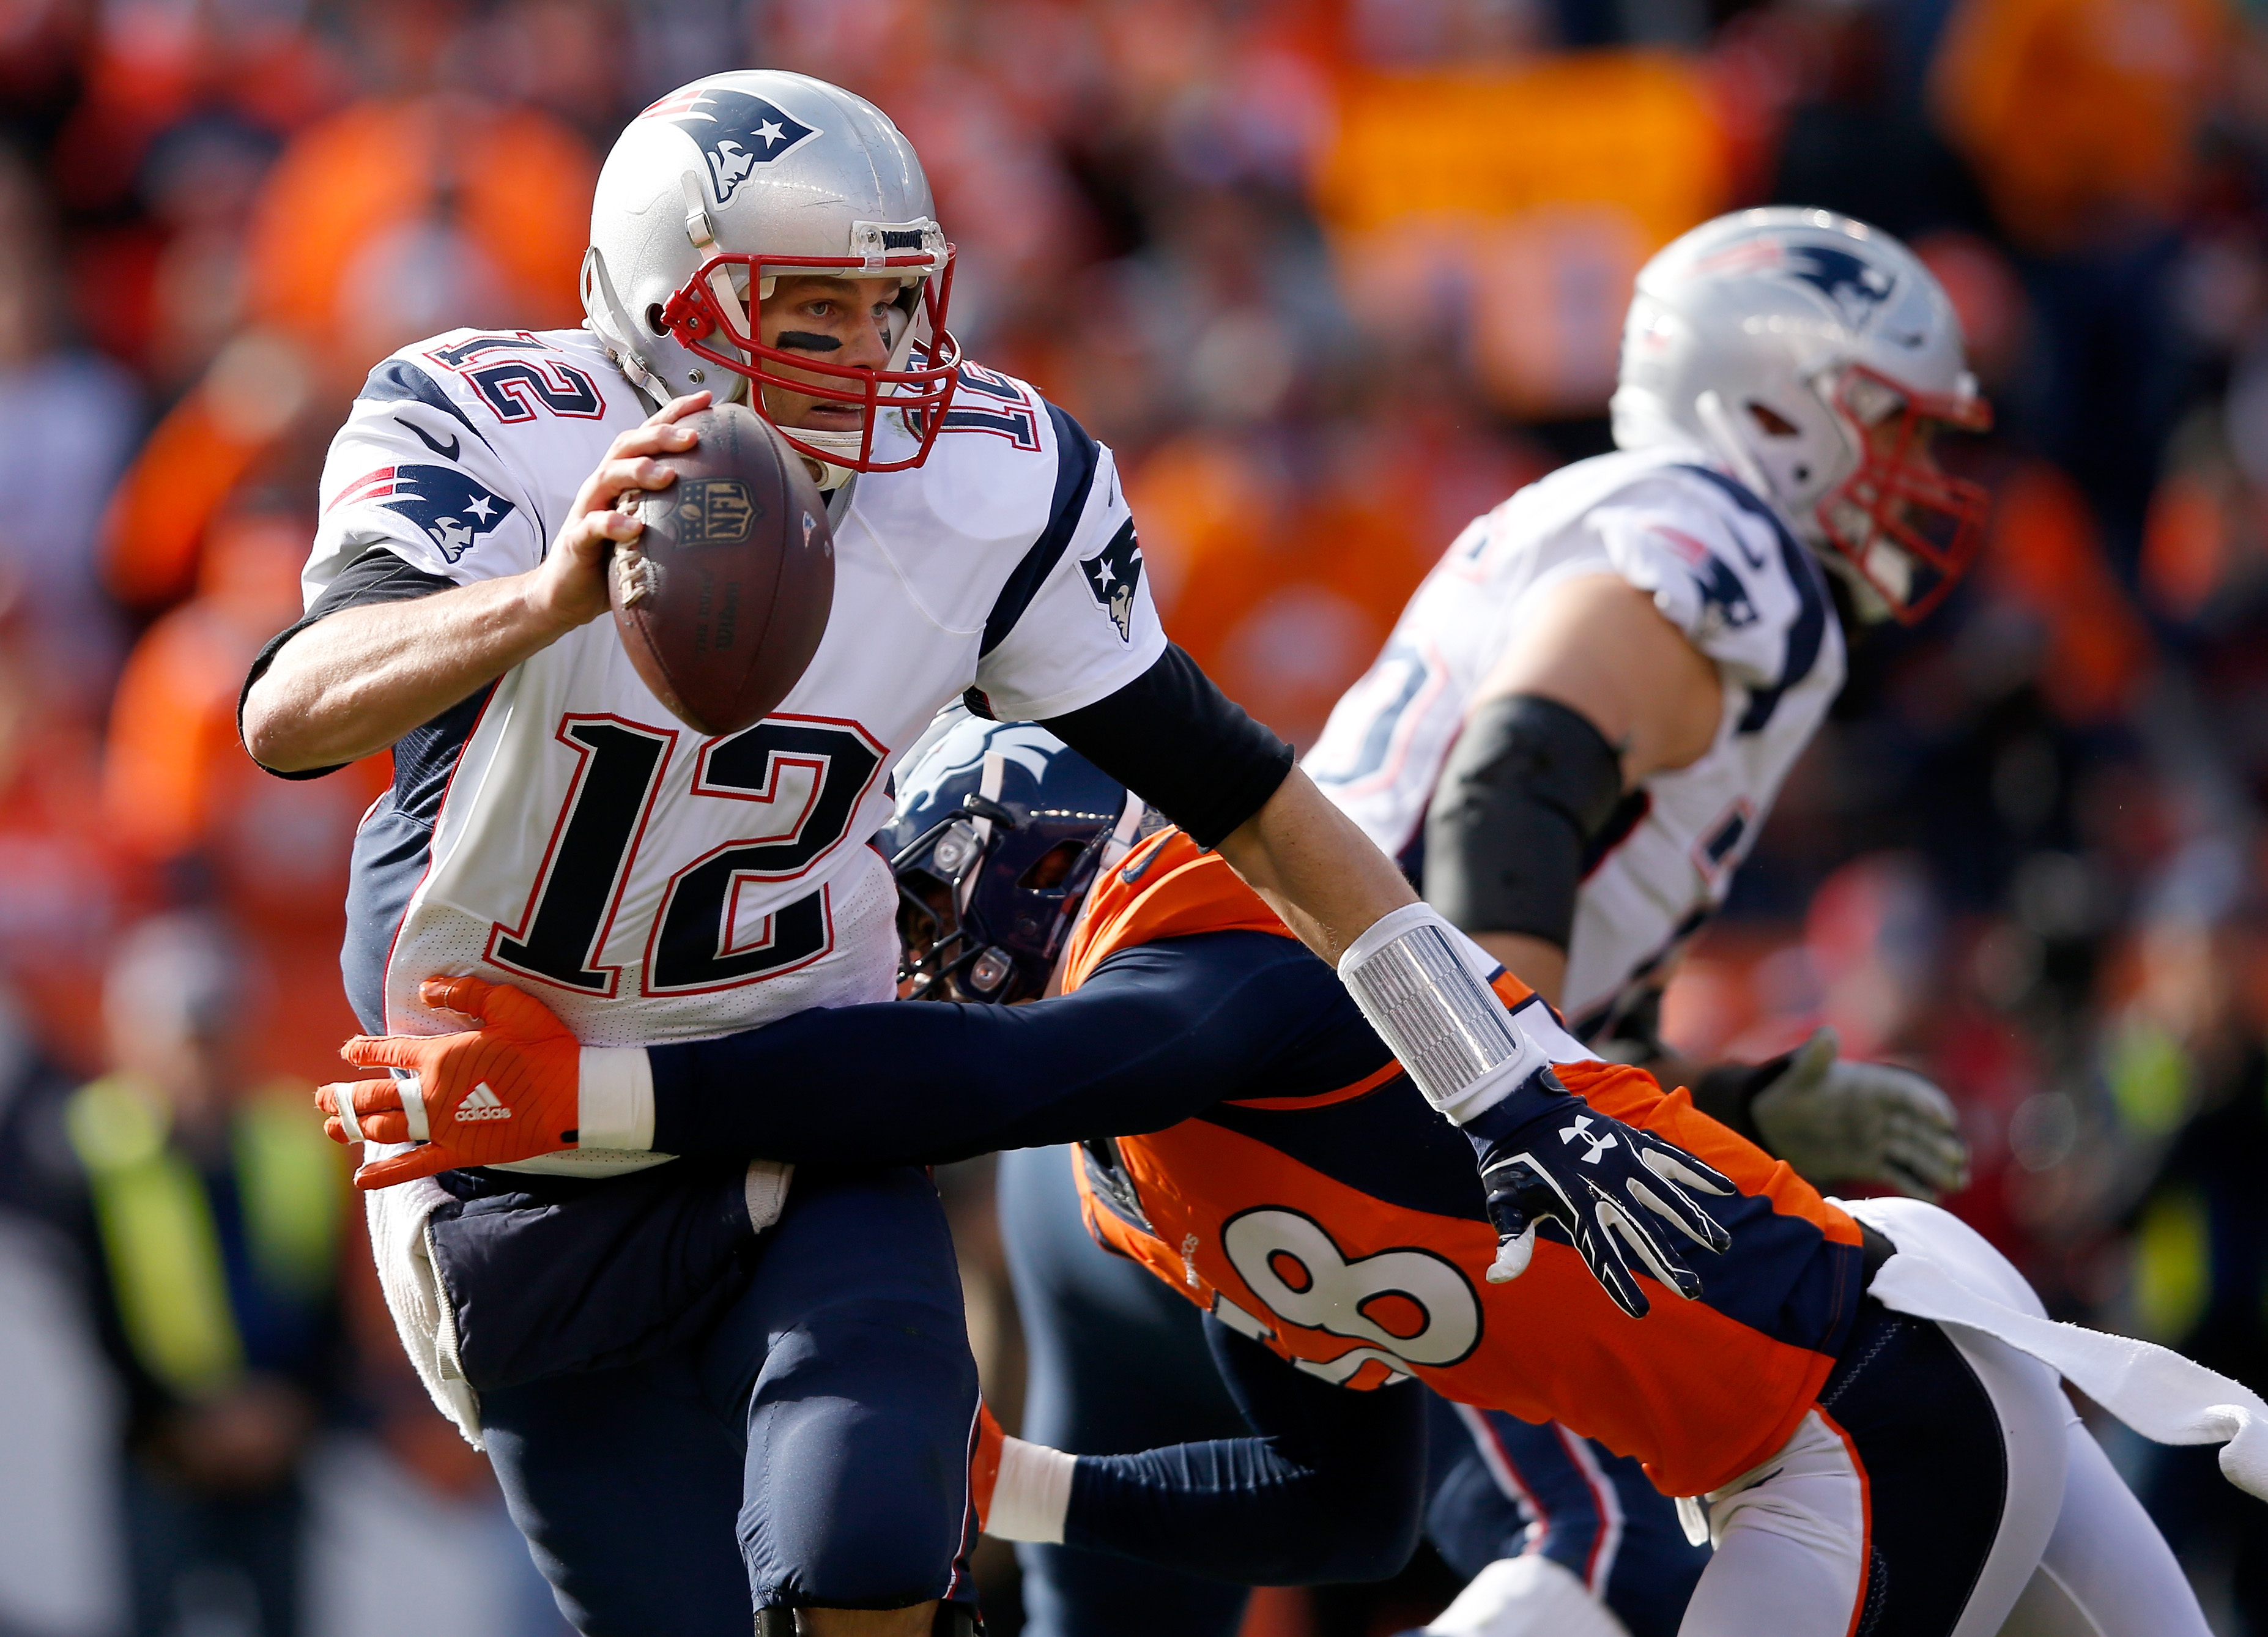 Tom Brady #12 of the New England Patriots tries to evade a tackle by  Von Miller #58 of the Denver Broncos in the first half in the AFC Championship game at Sports Authority Field at Mile High on January 24, 2016 in Denver, Colorado.  (Photo by Ezra Shaw/Getty Images)